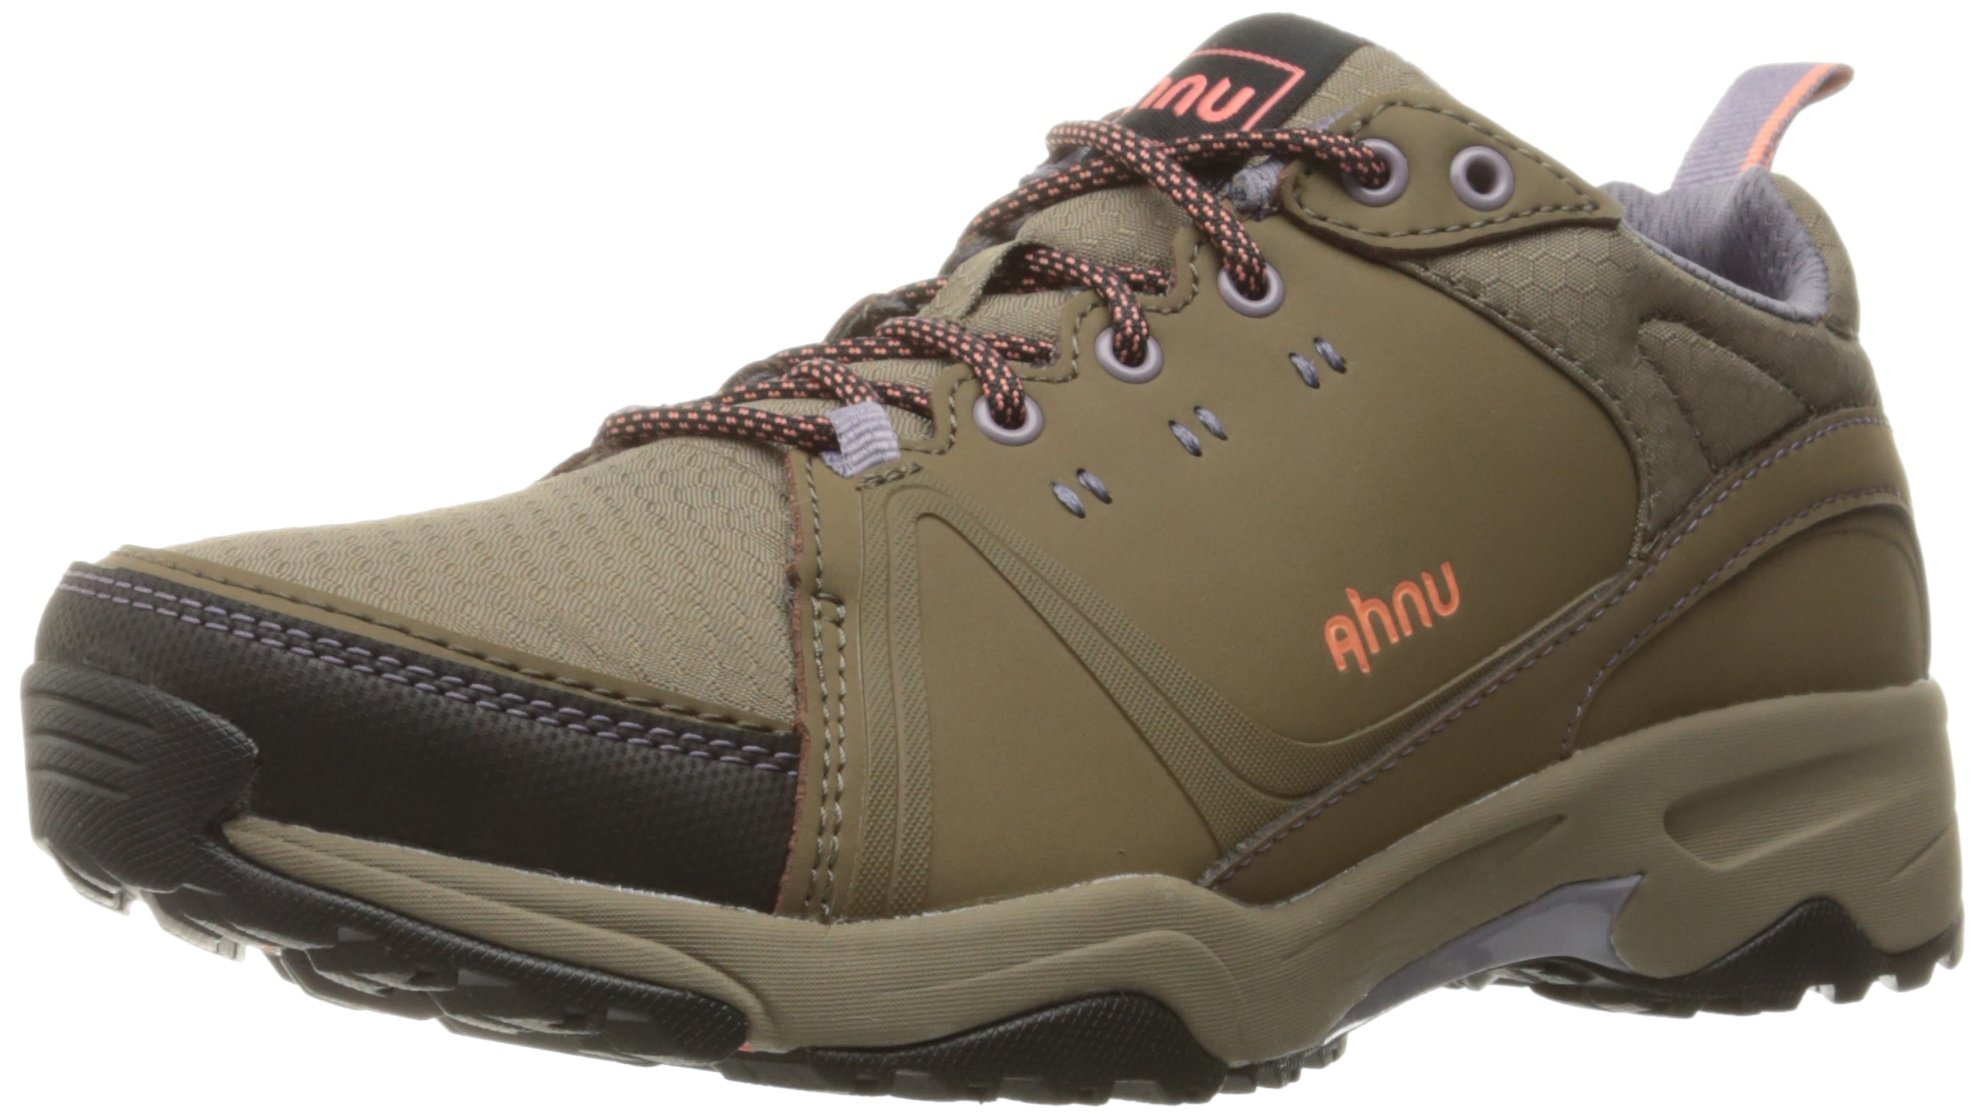 Ahnu Women's Alamere Low Hiking Shoe, Muir Woods, 9.5 M US